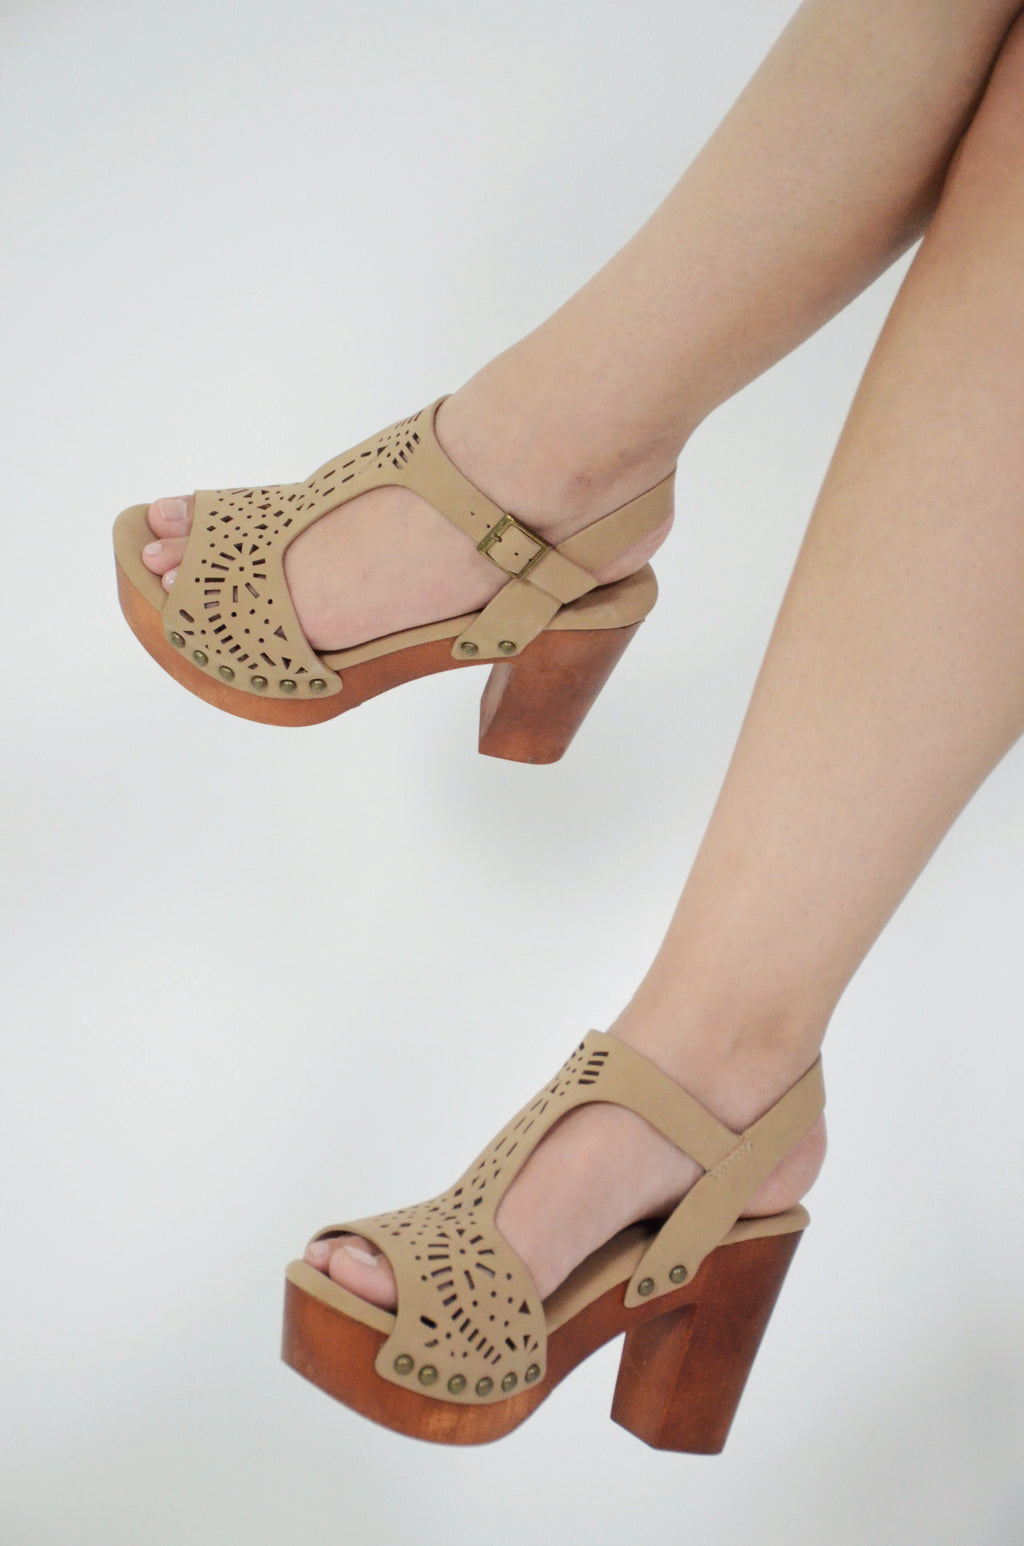 *FINAL SALE* The Santa Monica Block Heels